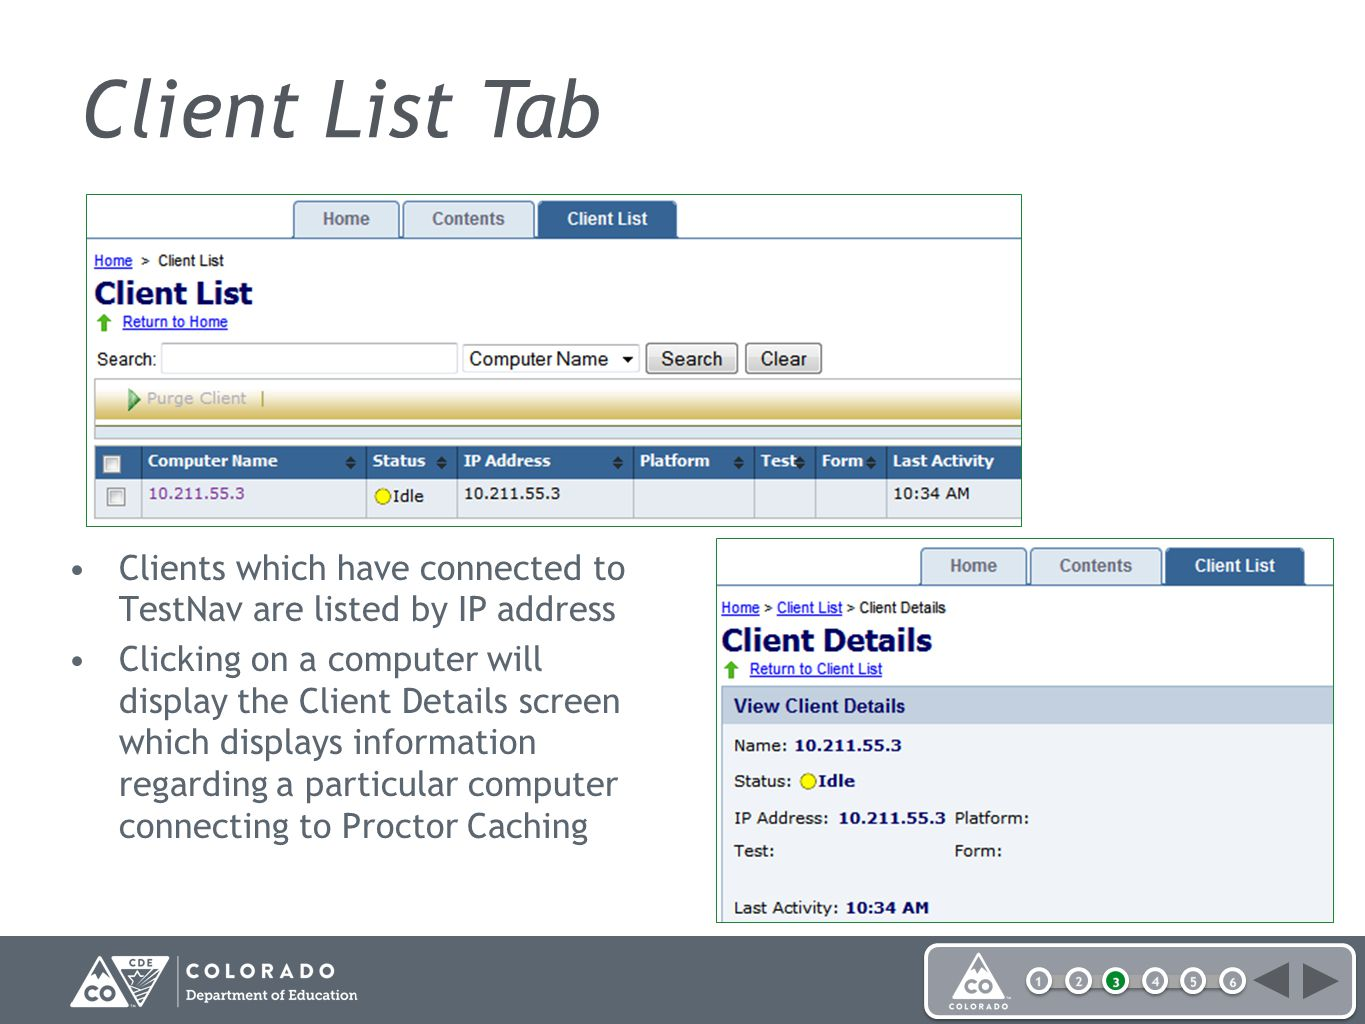 Clients which have connected to TestNav are listed by IP address Clicking on a computer will display the Client Details screen which displays information regarding a particular computer connecting to Proctor Caching Client List Tab